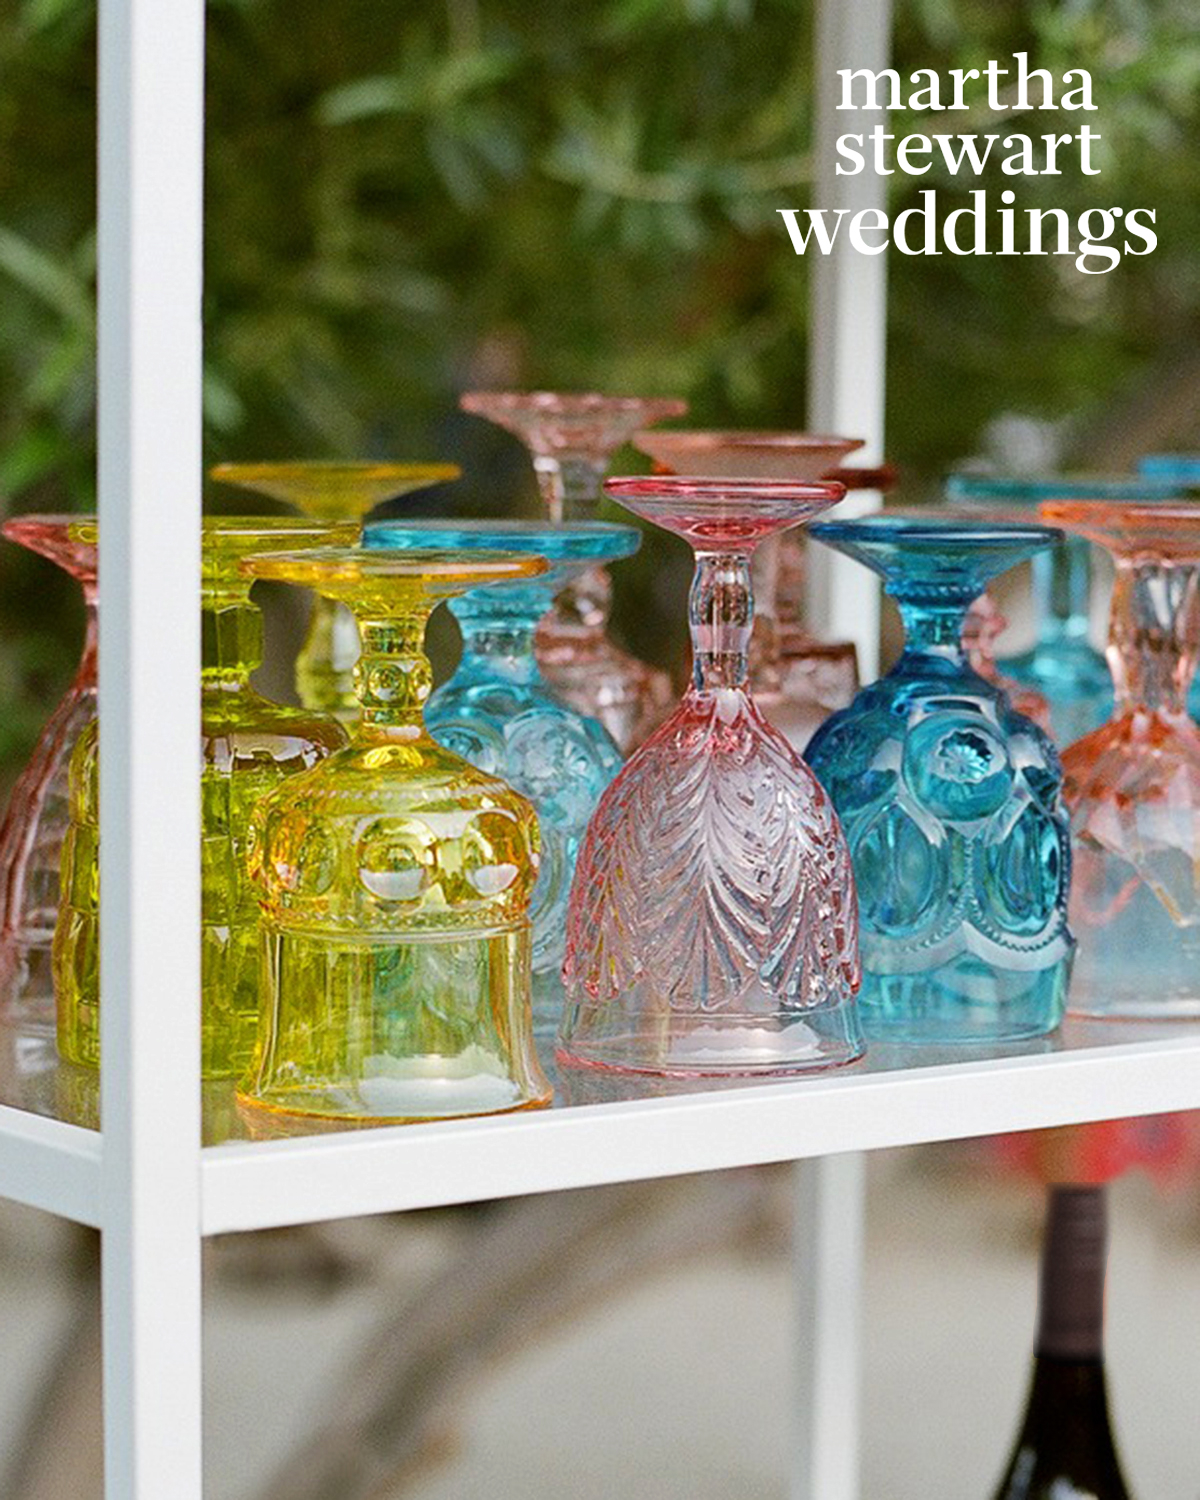 samira wiley lauren morelli wedding glassware